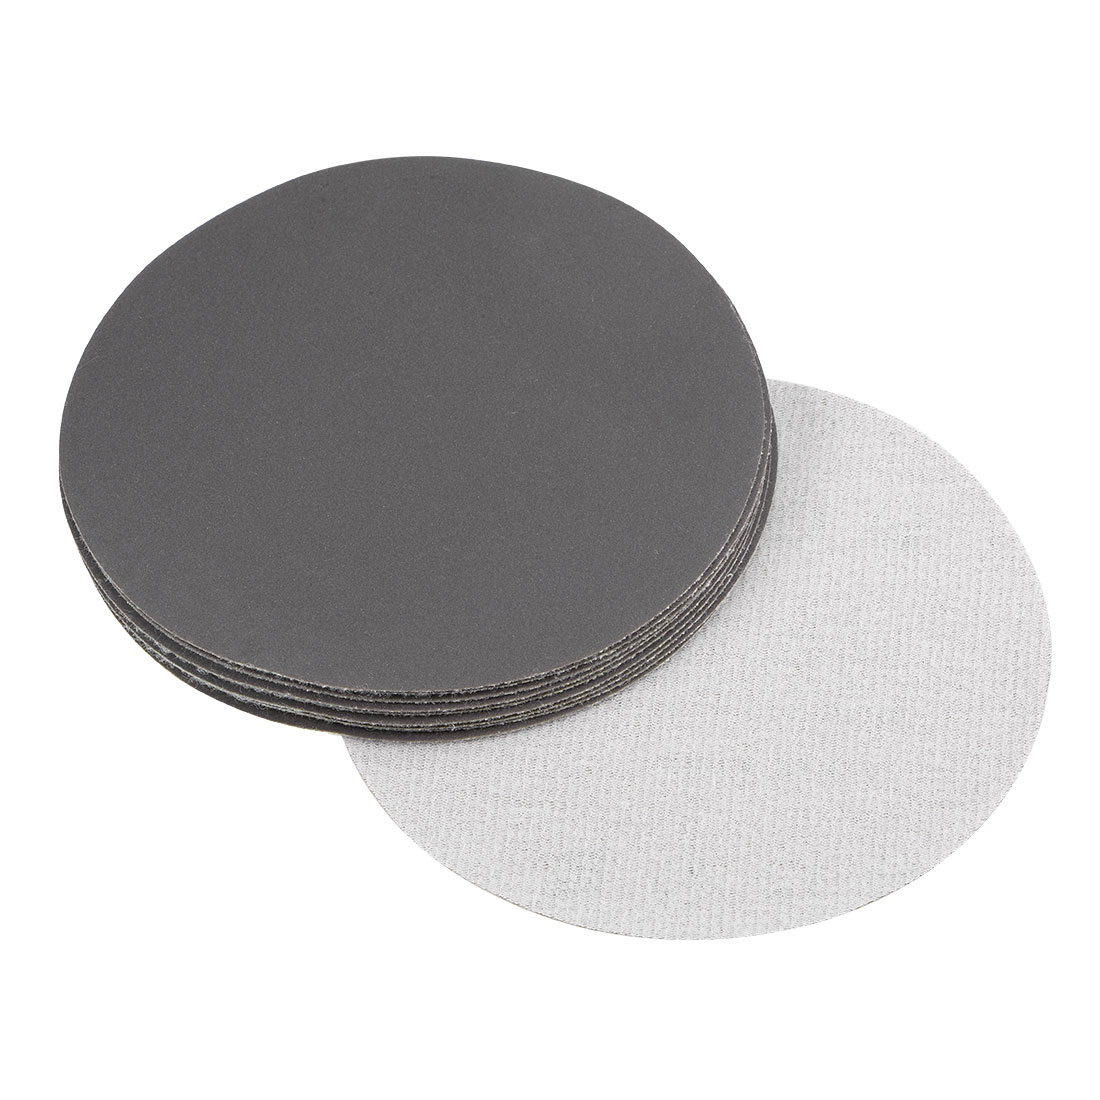 5 inch Wet Dry Discs 600 Grit Hook and Loop Sanding Disc Silicon Carbide 10pcs